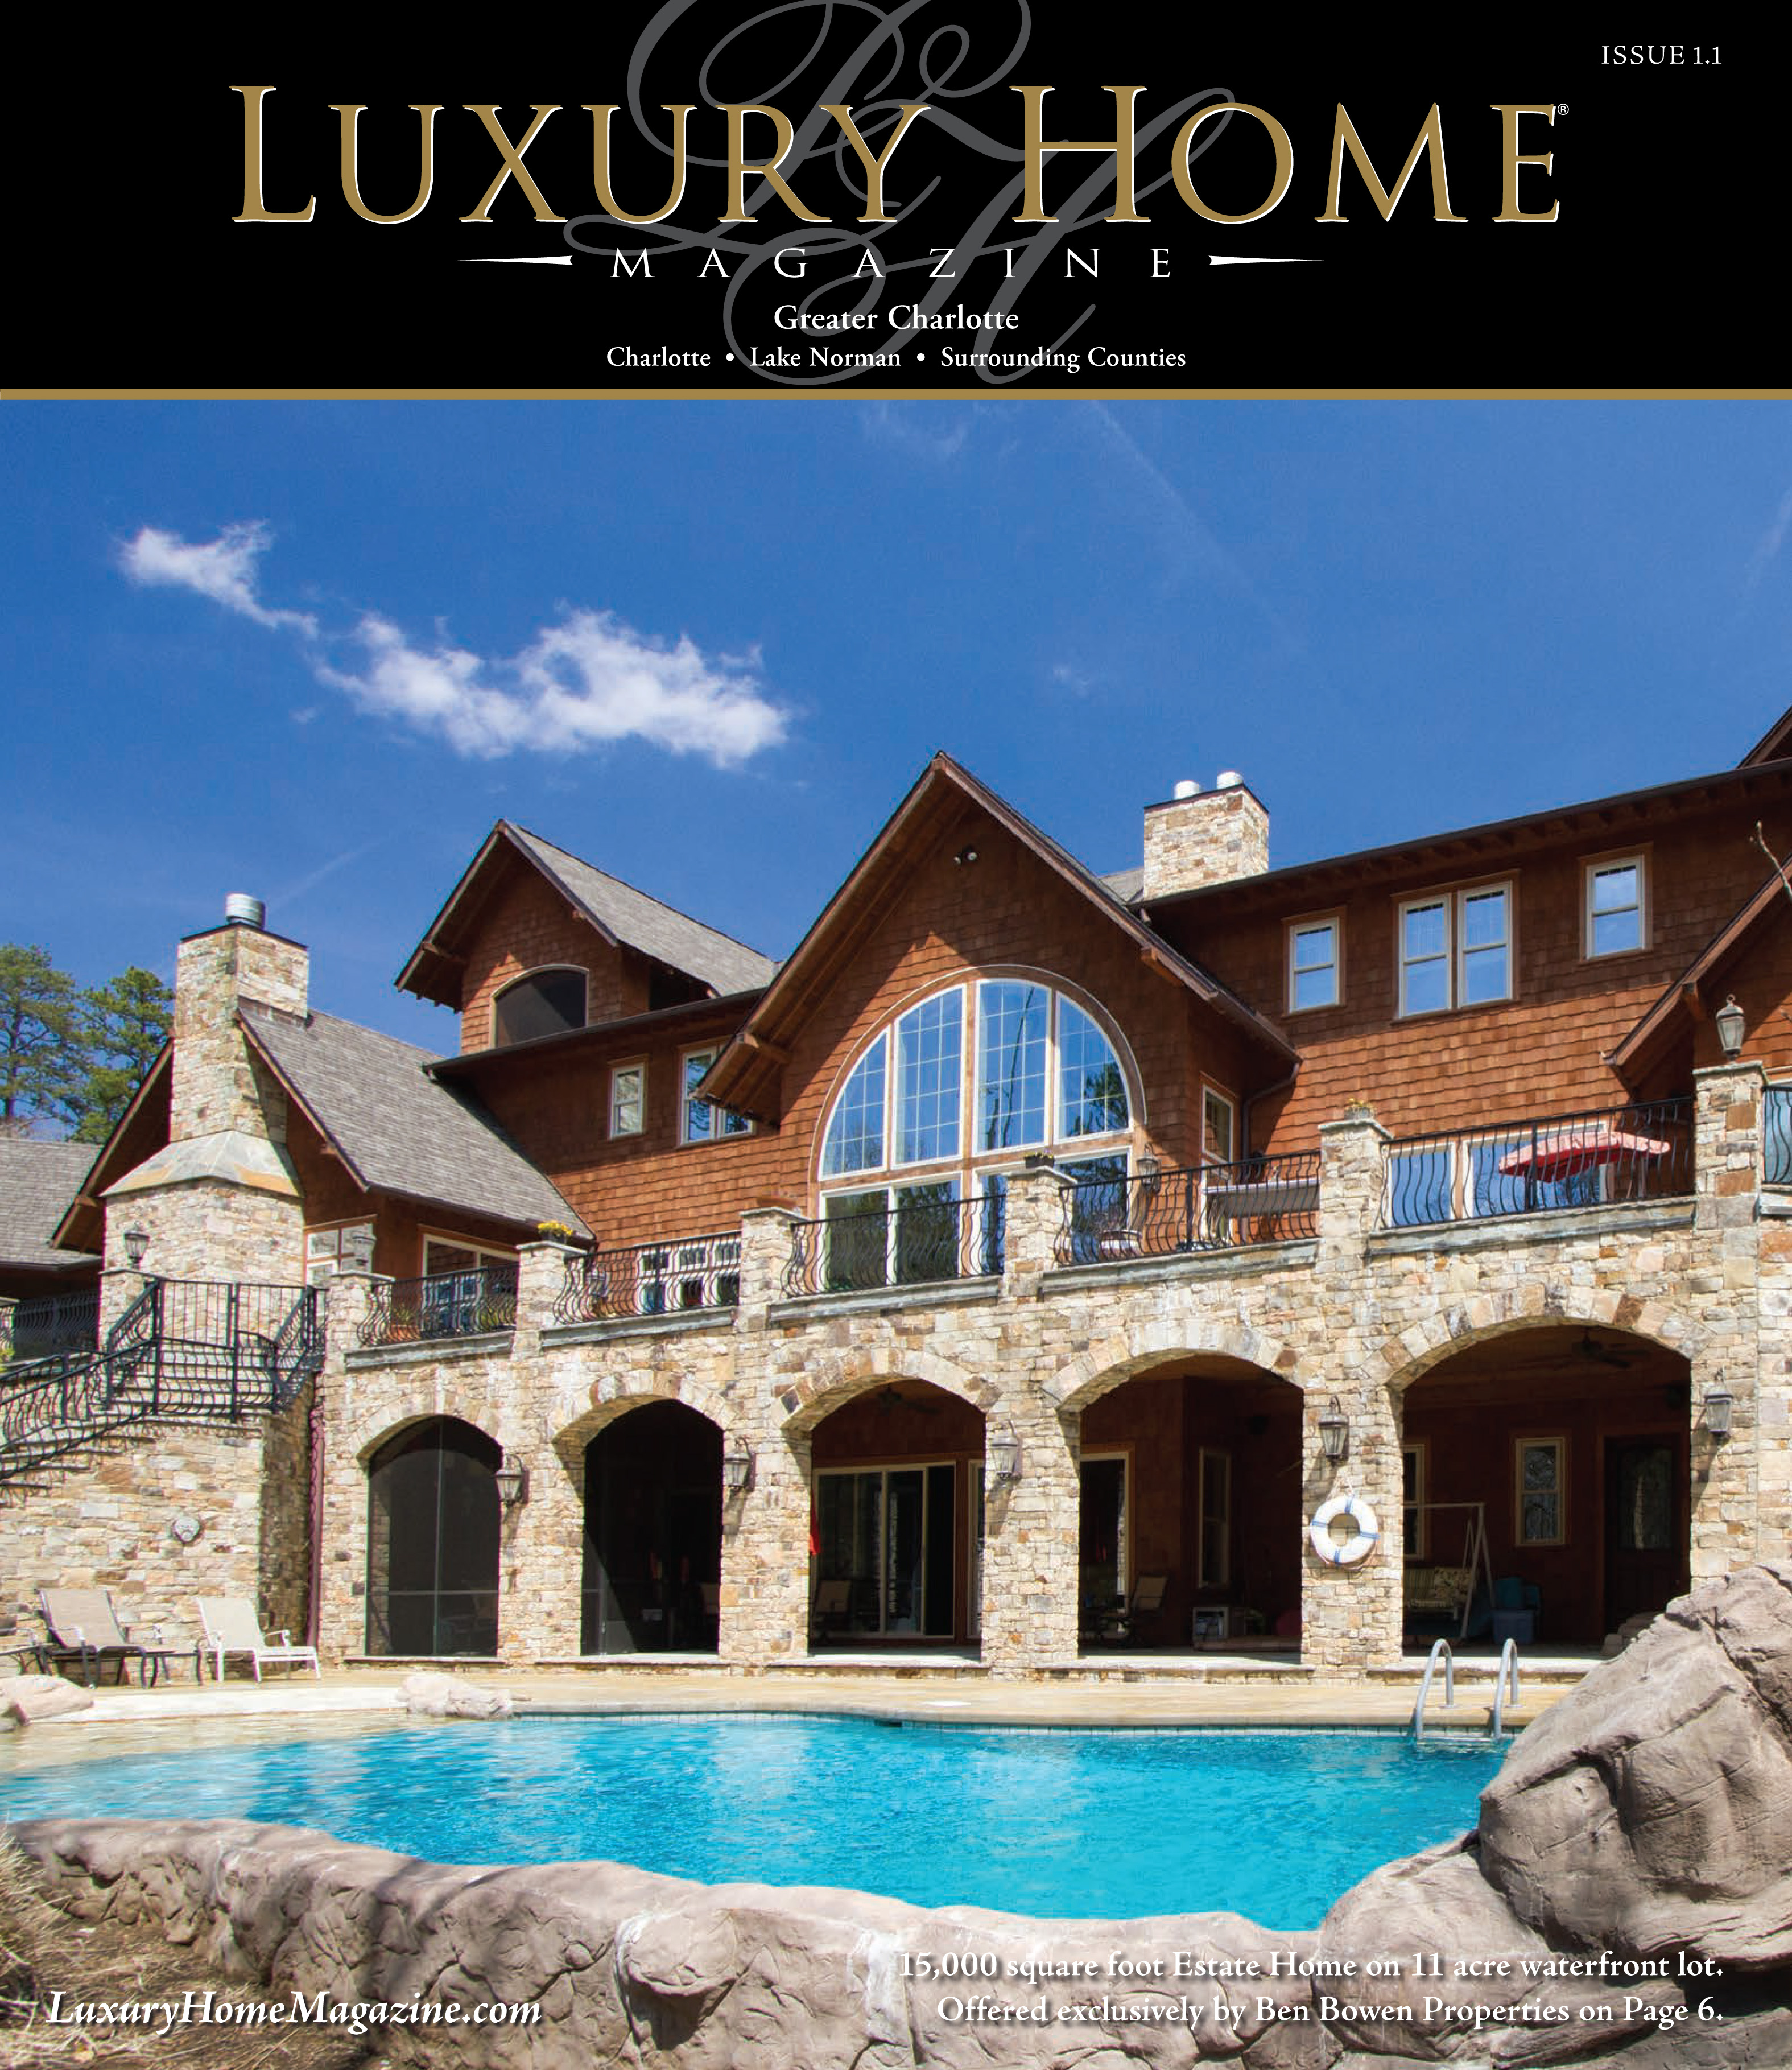 Luxury Home Magazine Makes Royal Entrance With Premier